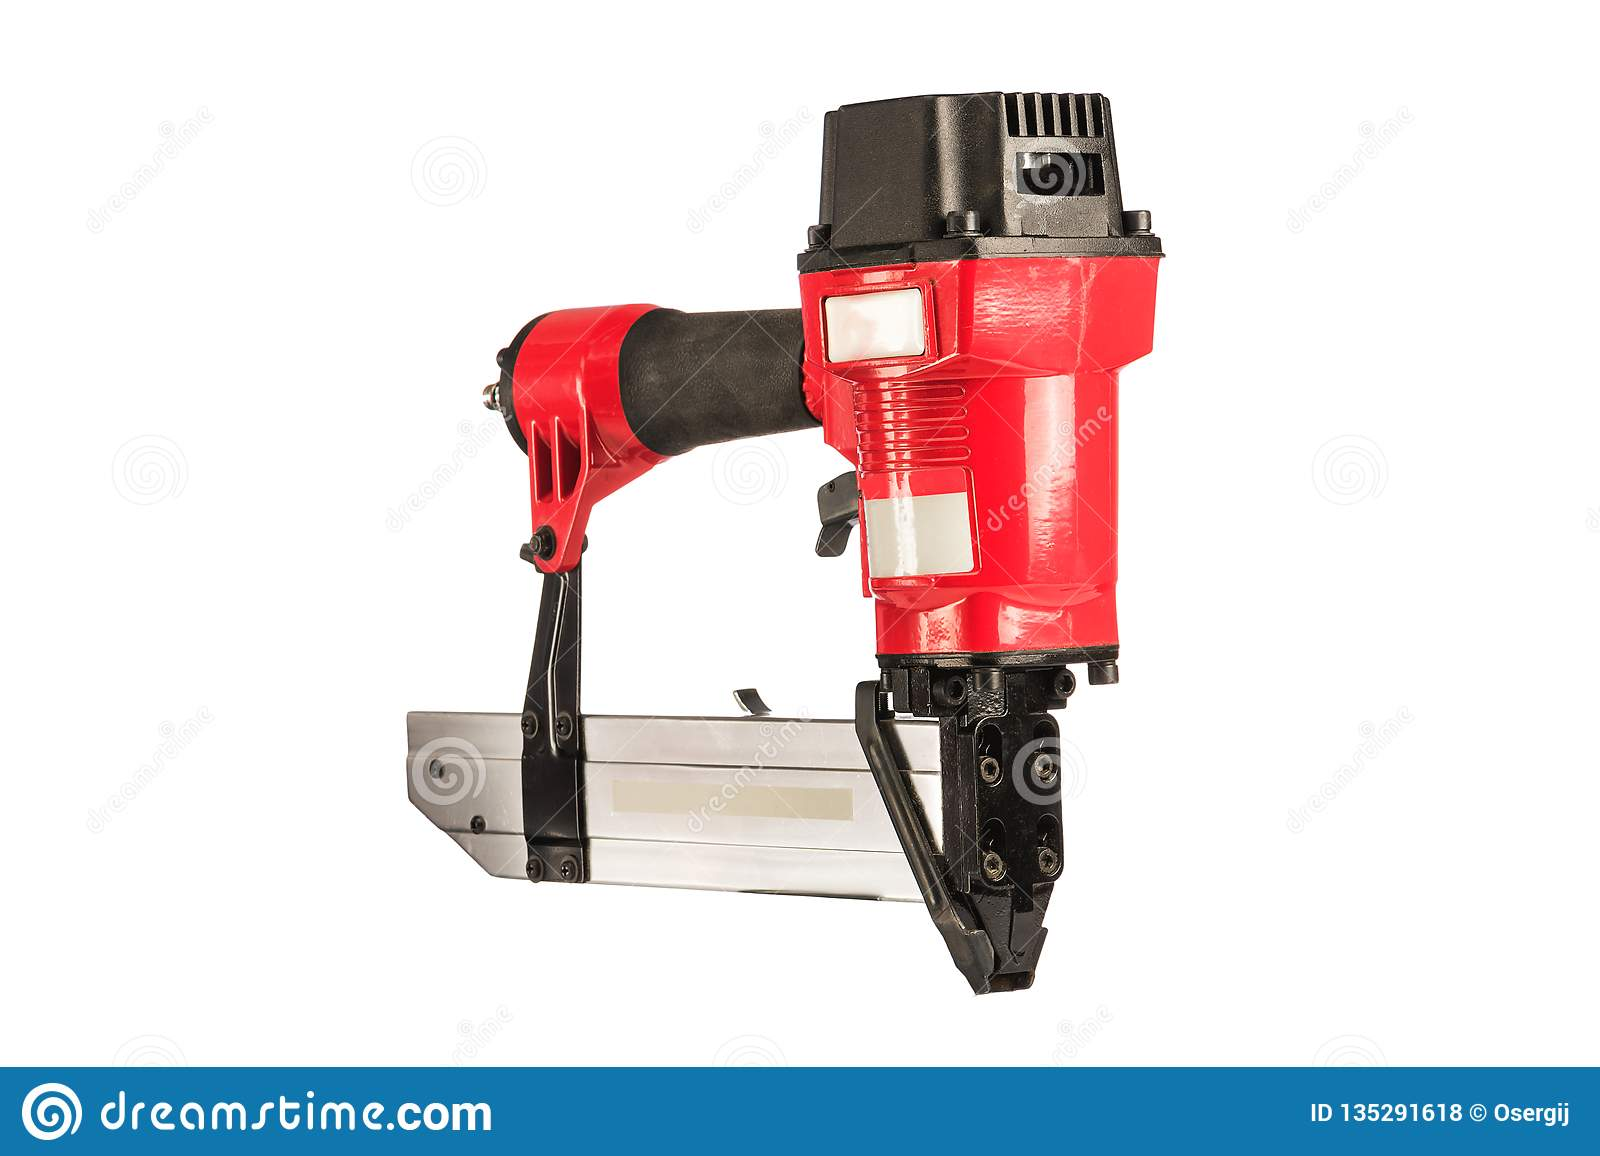 Red pneumatic stapler on a white background. Isolated